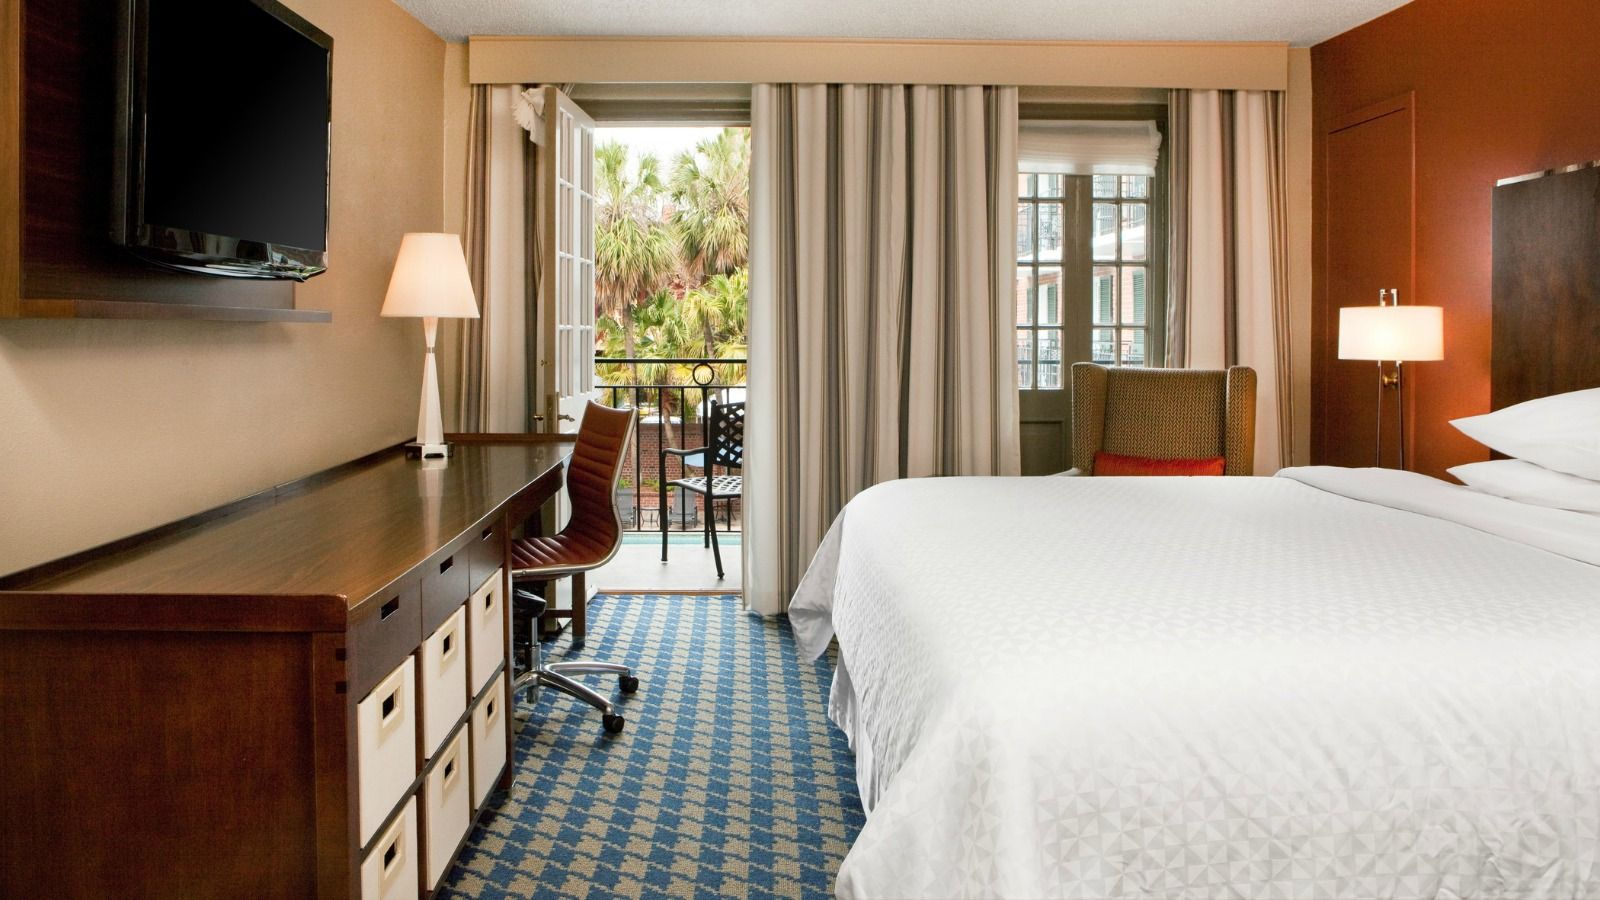 French Quarter Guest Rooms - King Room with Balcony